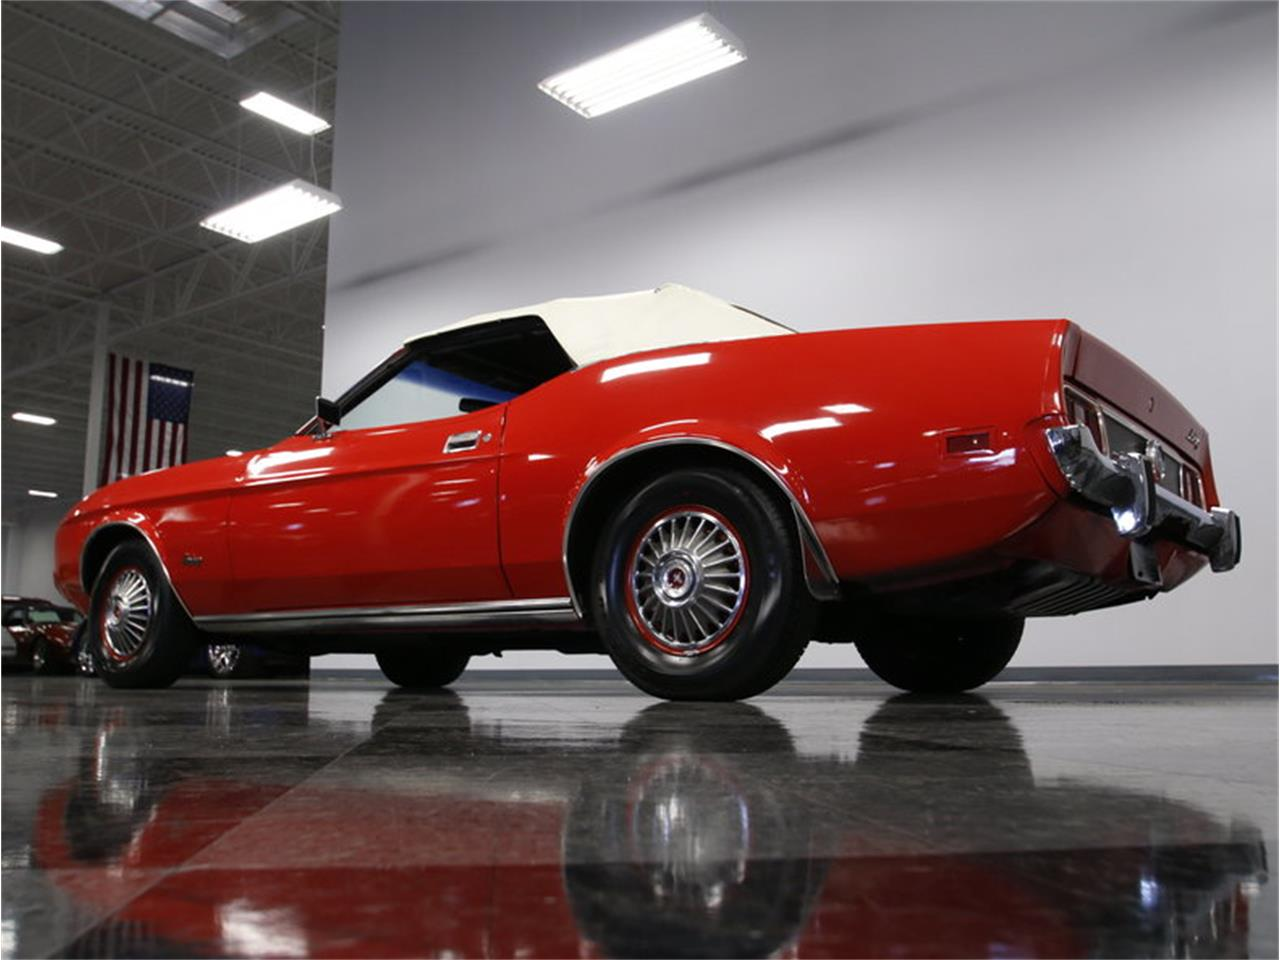 Large Picture of Classic 1973 Ford Mustang 351 Cobra Jet located in North Carolina - $24,995.00 - KISW